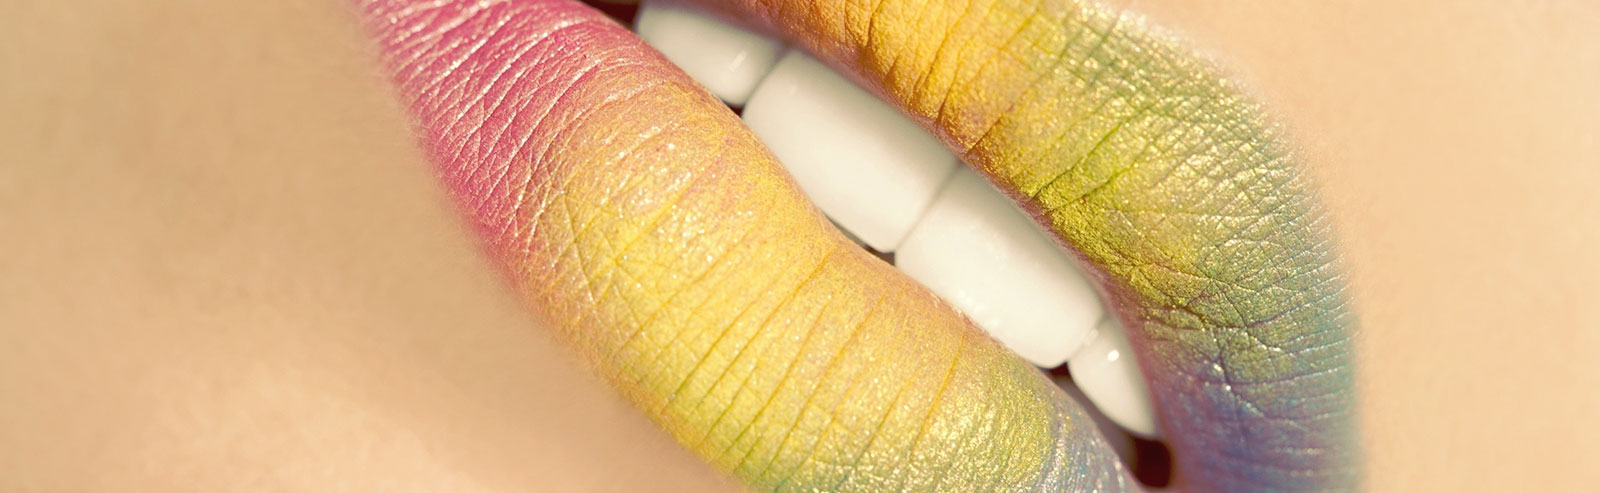 Wacky Trend Wednesday: Color Changing Lipstick